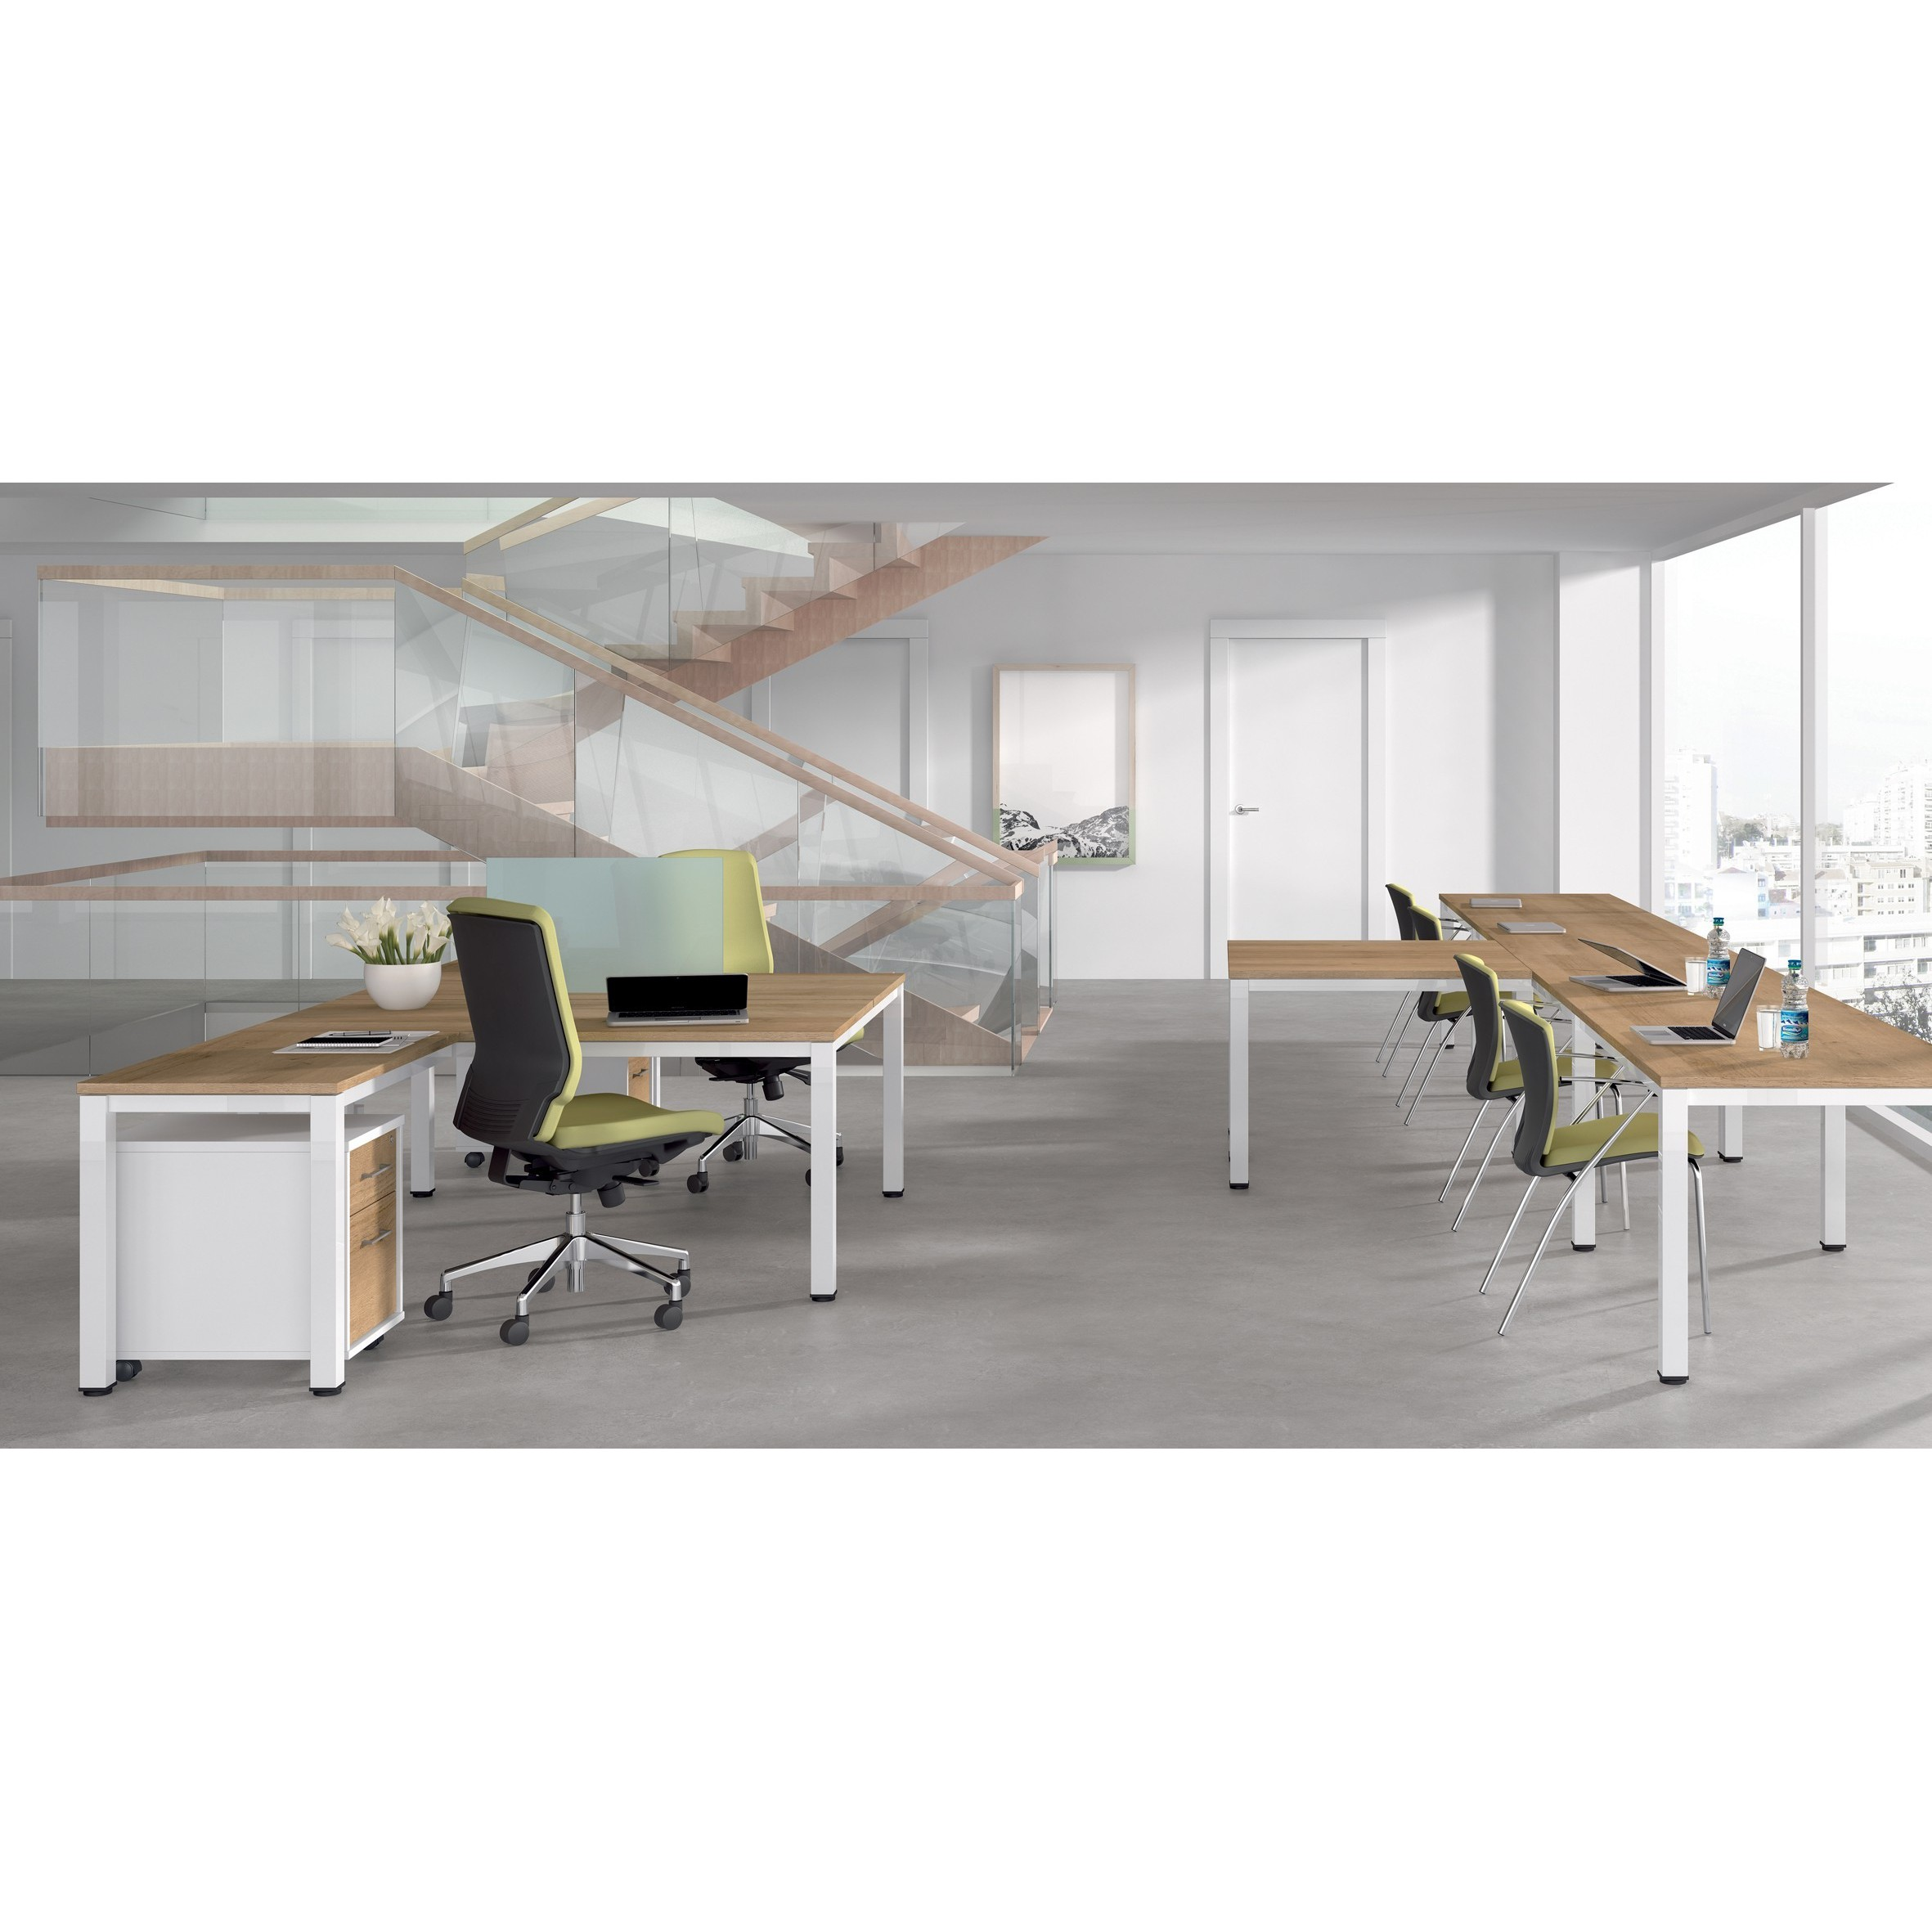 TABLE OFFICE 'S EXECUTIVE SERIES 200x100 ALUMINUM/WHITE